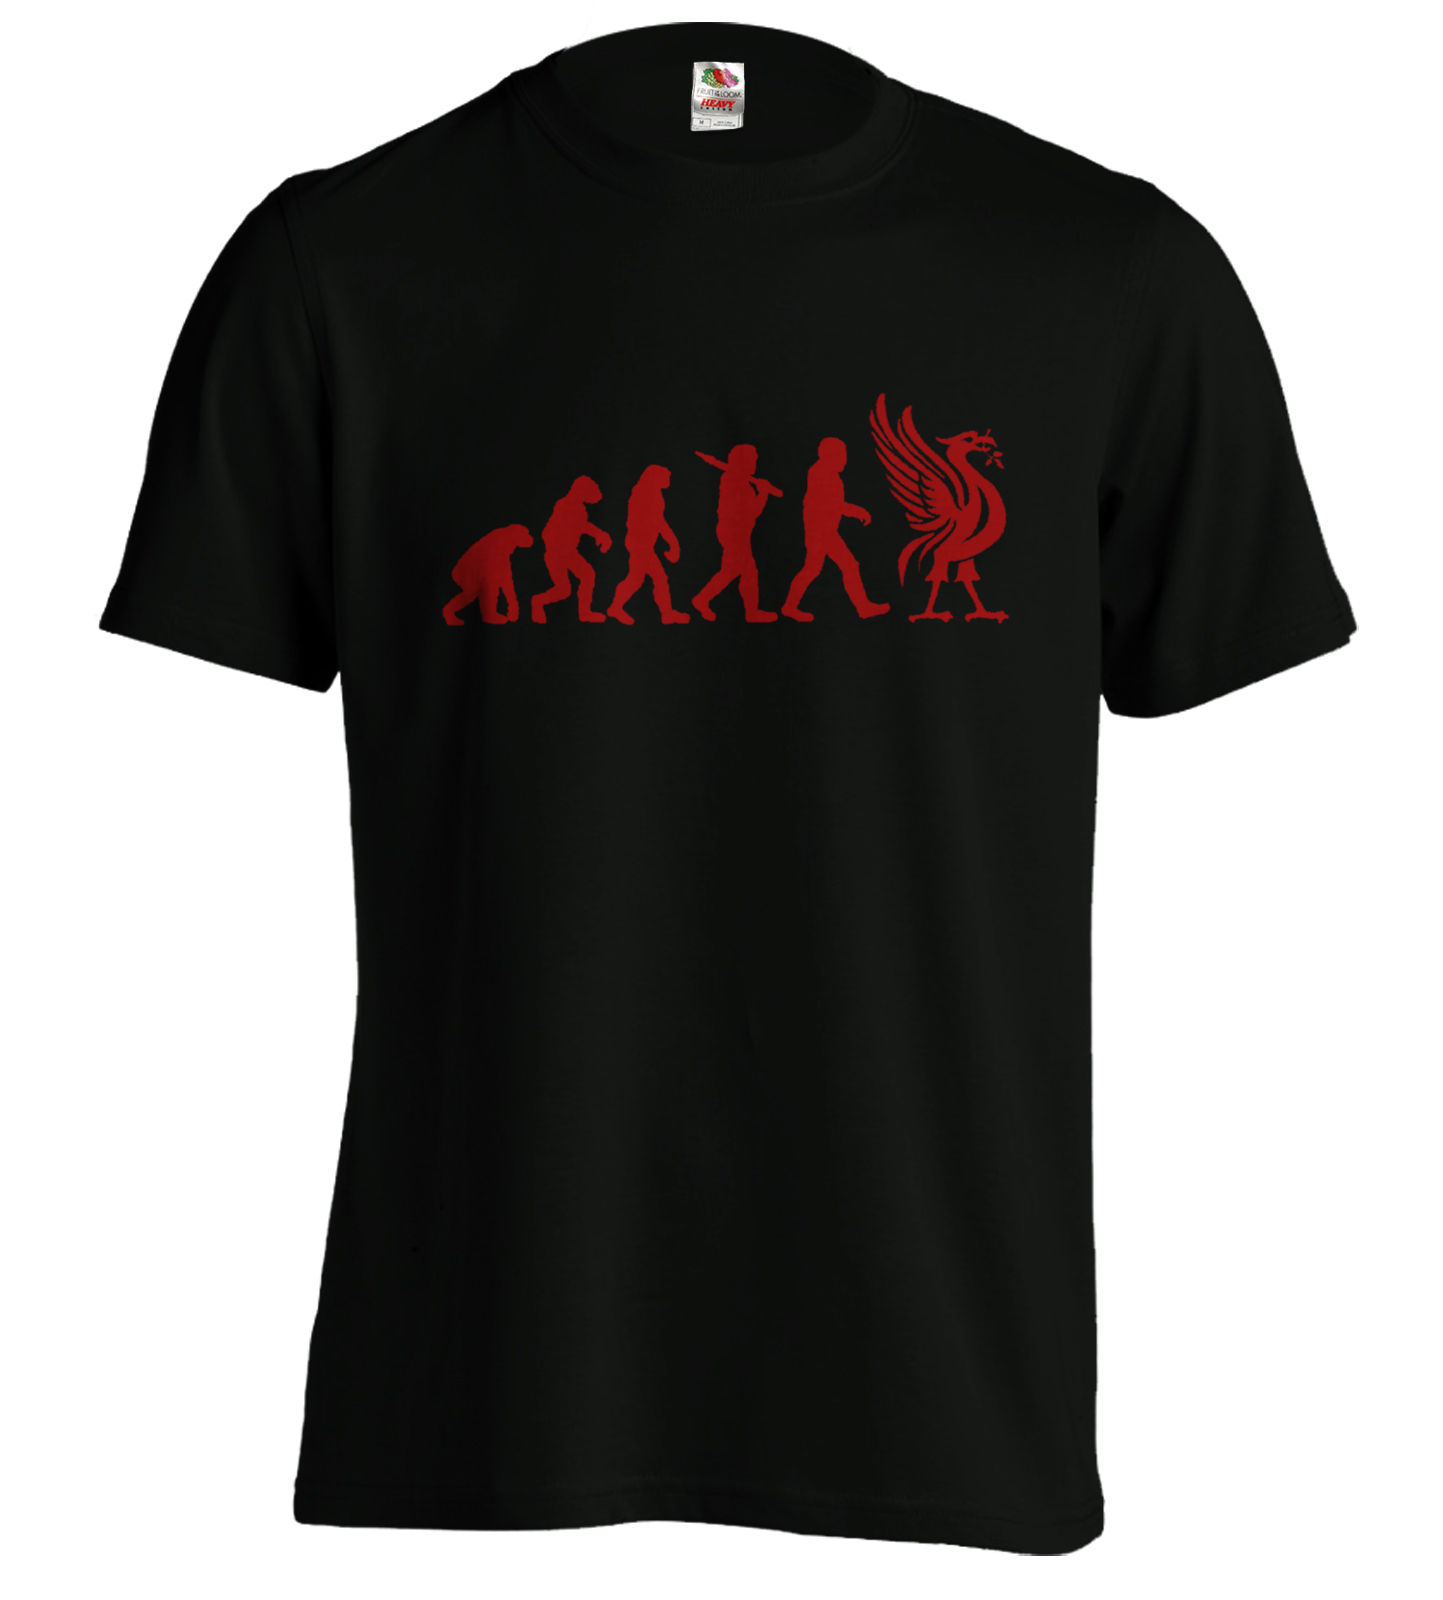 Liverpool Evolution T-Shirt Liver Bird Tee Funny T Xmas Birthday Present New T Shirts Funny Tops Tee New Unisex Funny Tops